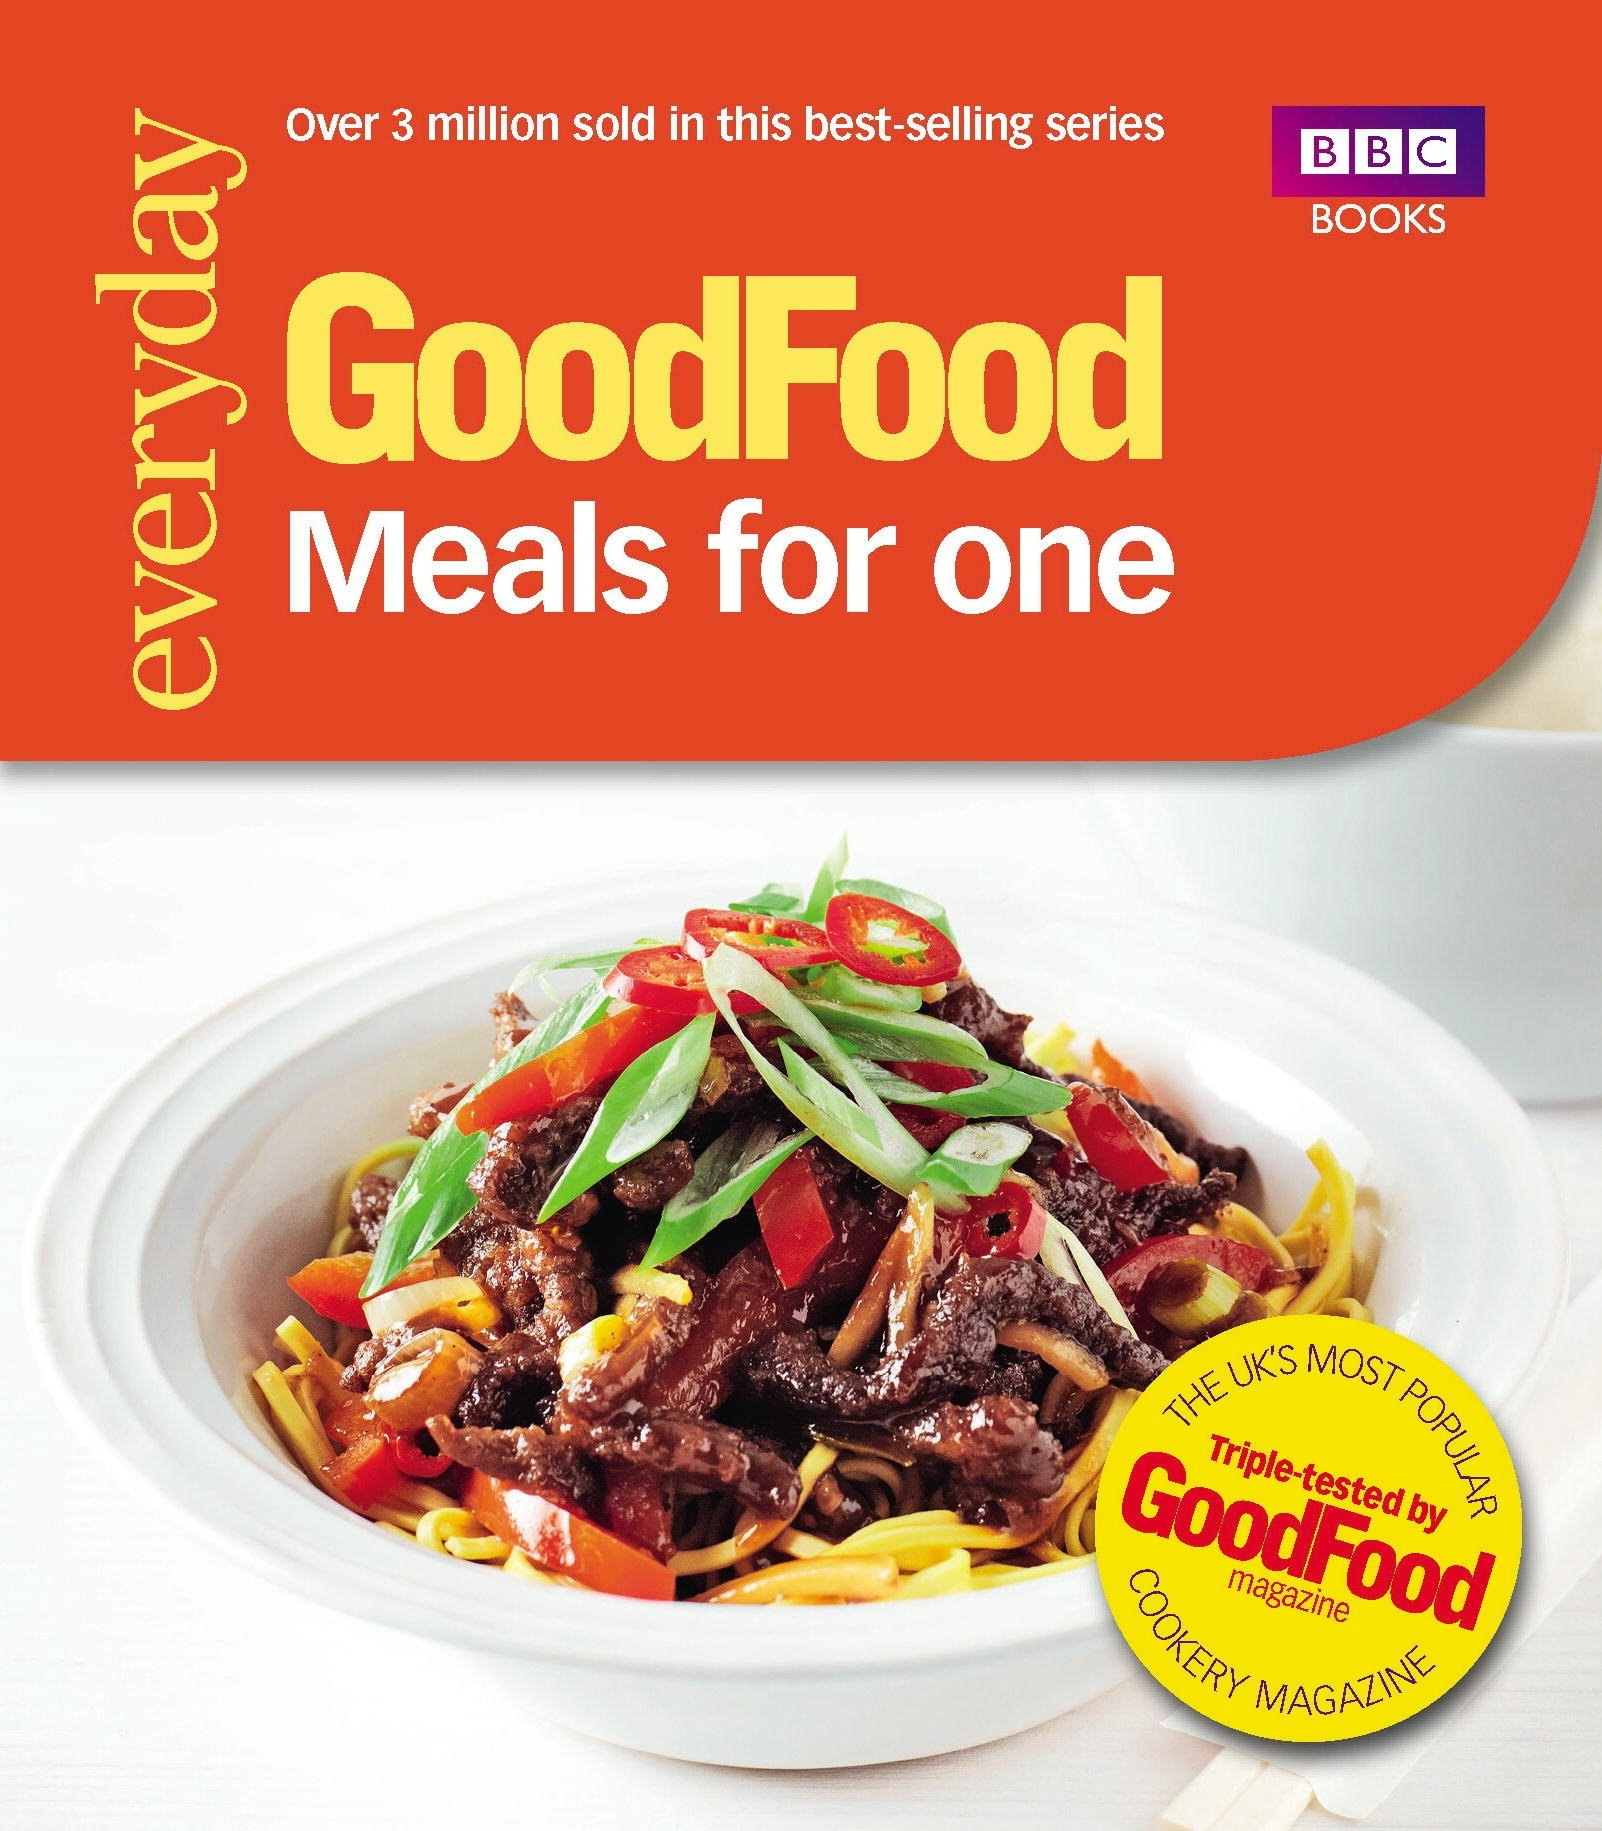 Good food meals for one triple tested recipes cassie best good food meals for one triple tested recipes cassie best 9781849906715 books amazon forumfinder Images